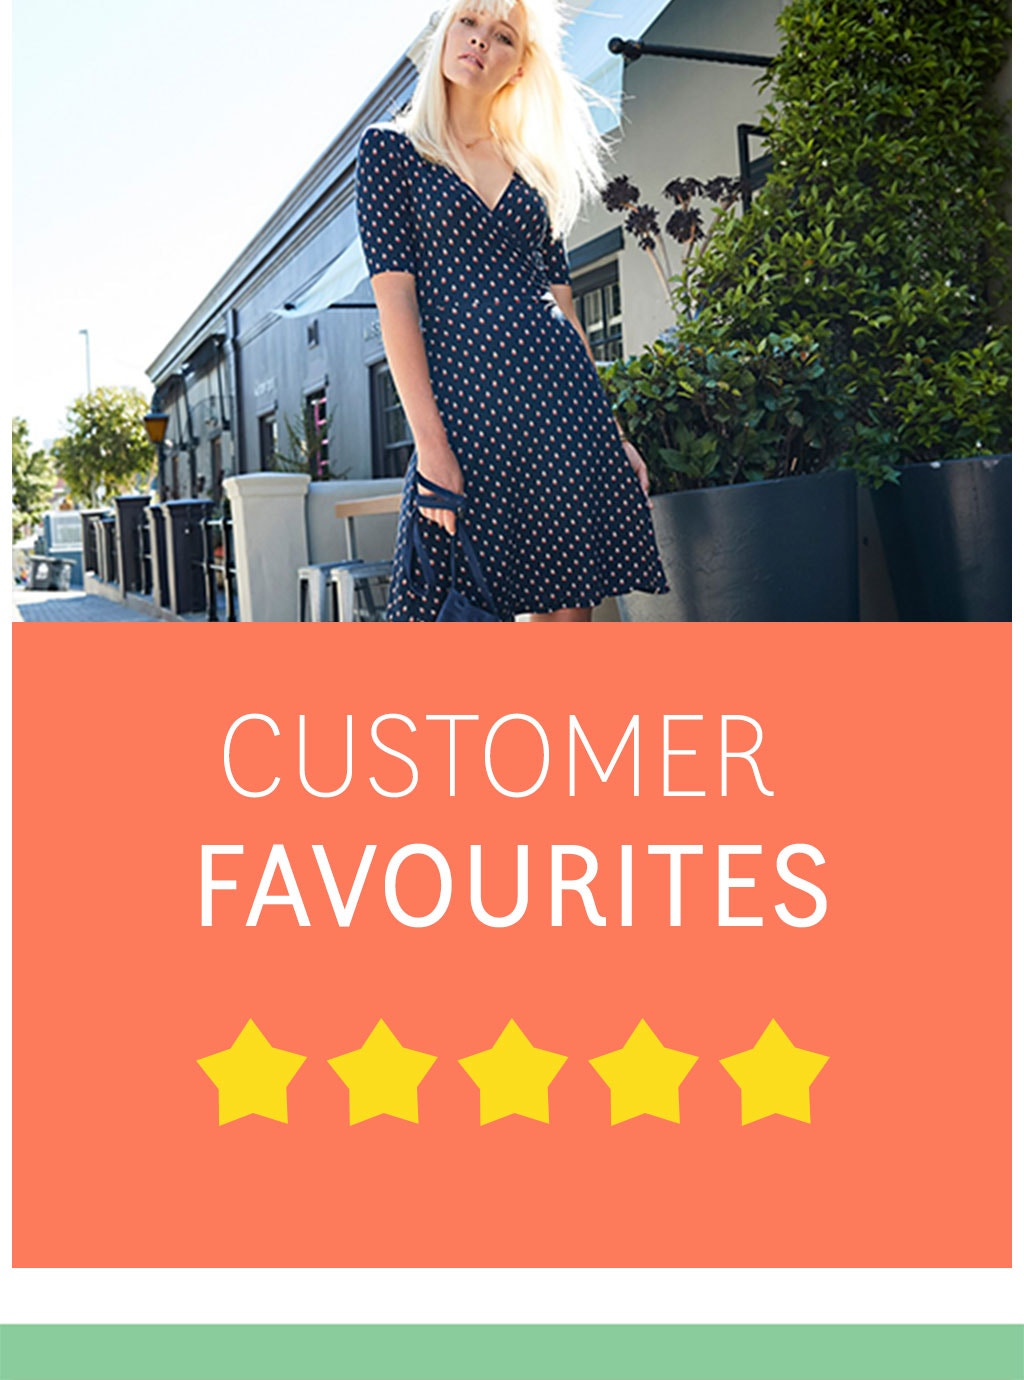 Customer Favourites